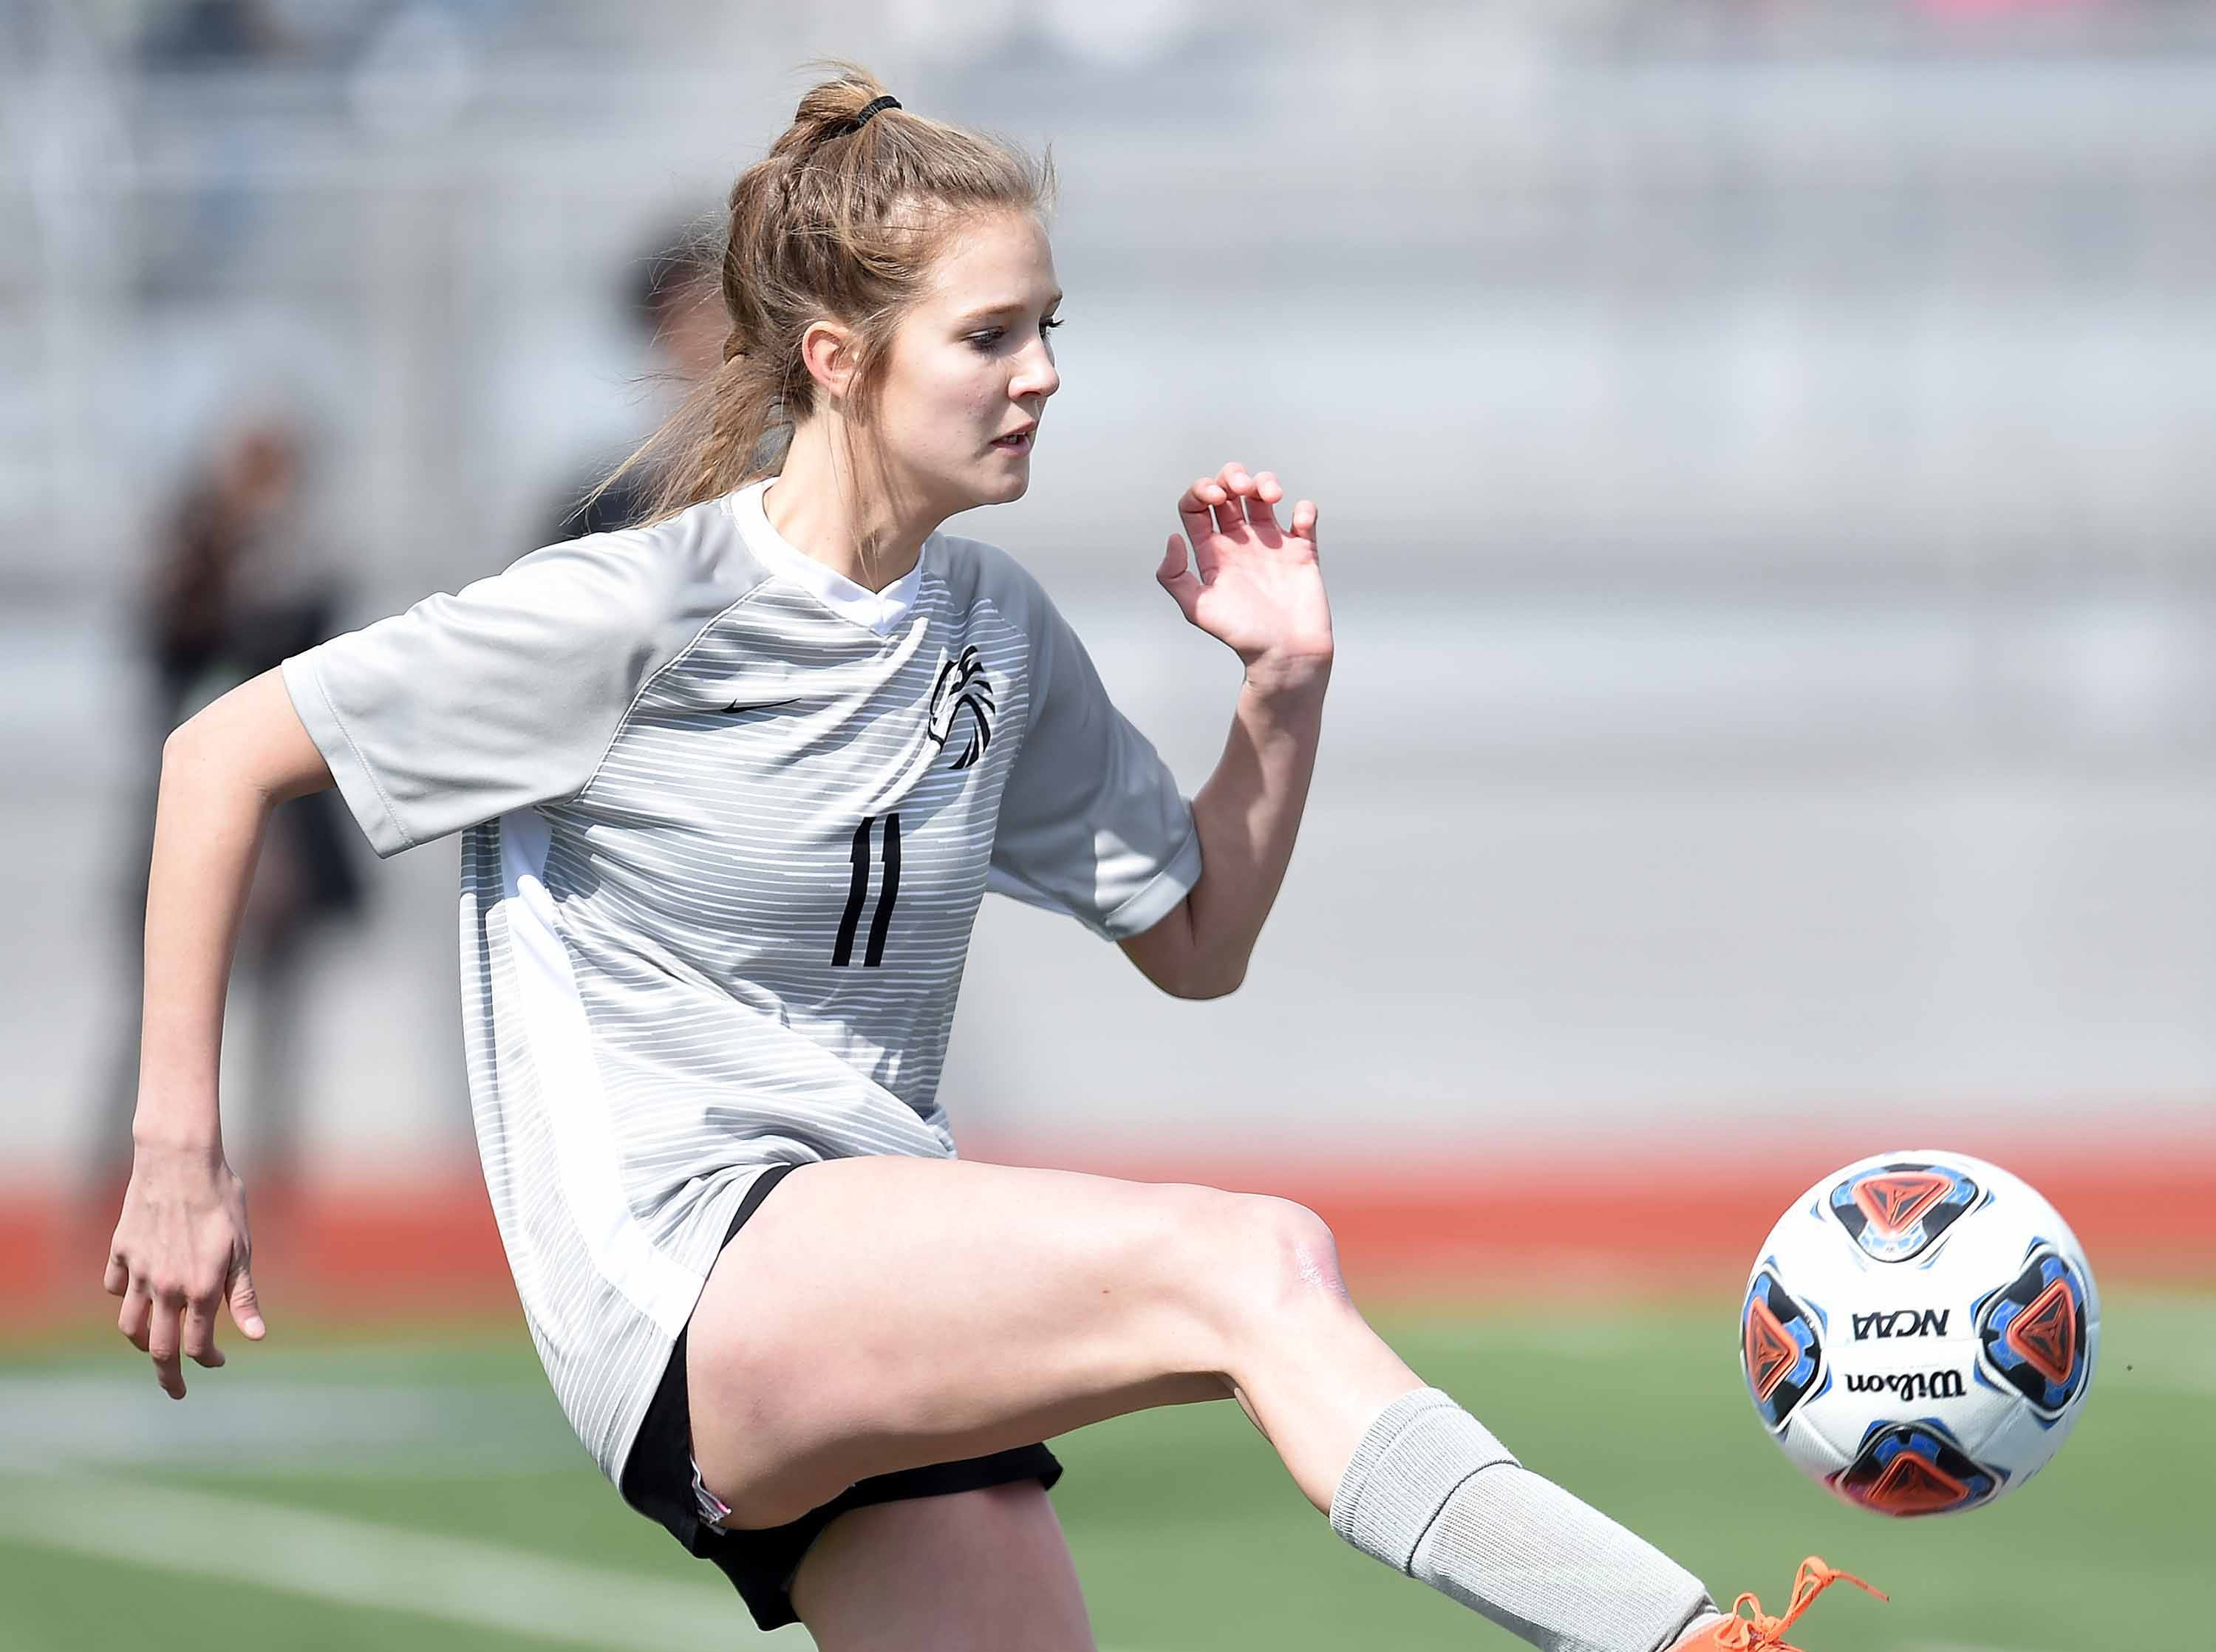 Florence's Kaitlyn Hubbard (11) intercepts a pass against West Lauderdale in the Class 4A state championship in the MHSAA BlueCross Blue Shield of Mississippi Soccer Classic on Saturday, February 9, 2019, at Ridgeland High School in Ridgeland, Miss.